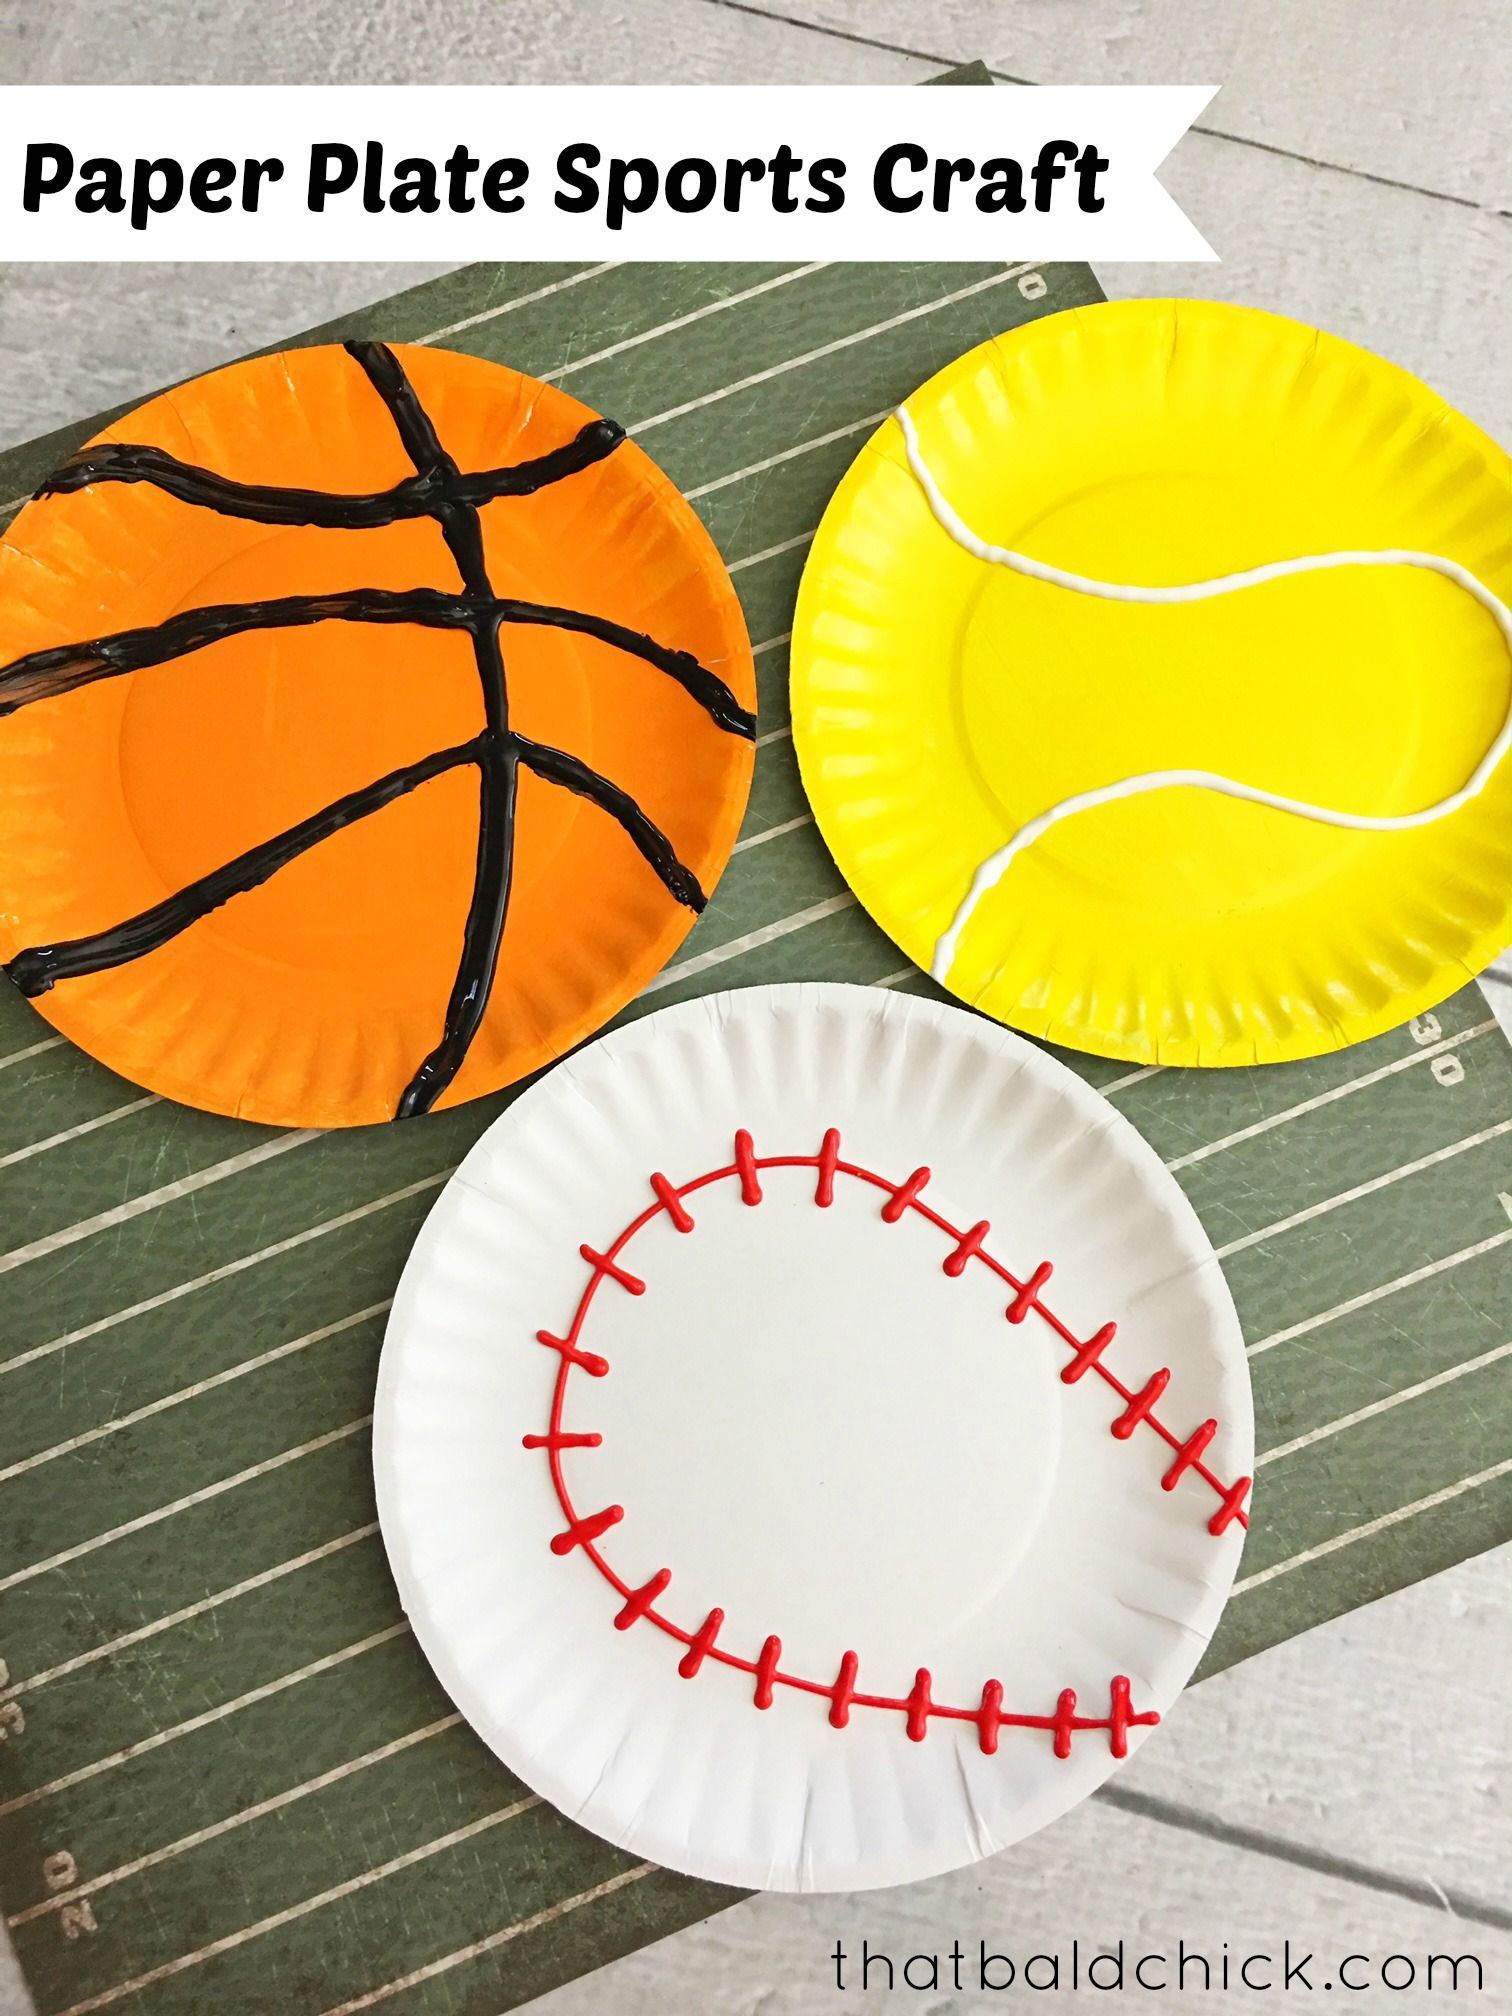 Best ideas about Sports Crafts For Kids . Save or Pin Paper Plate Sports Craft at thatbaldchick Now.